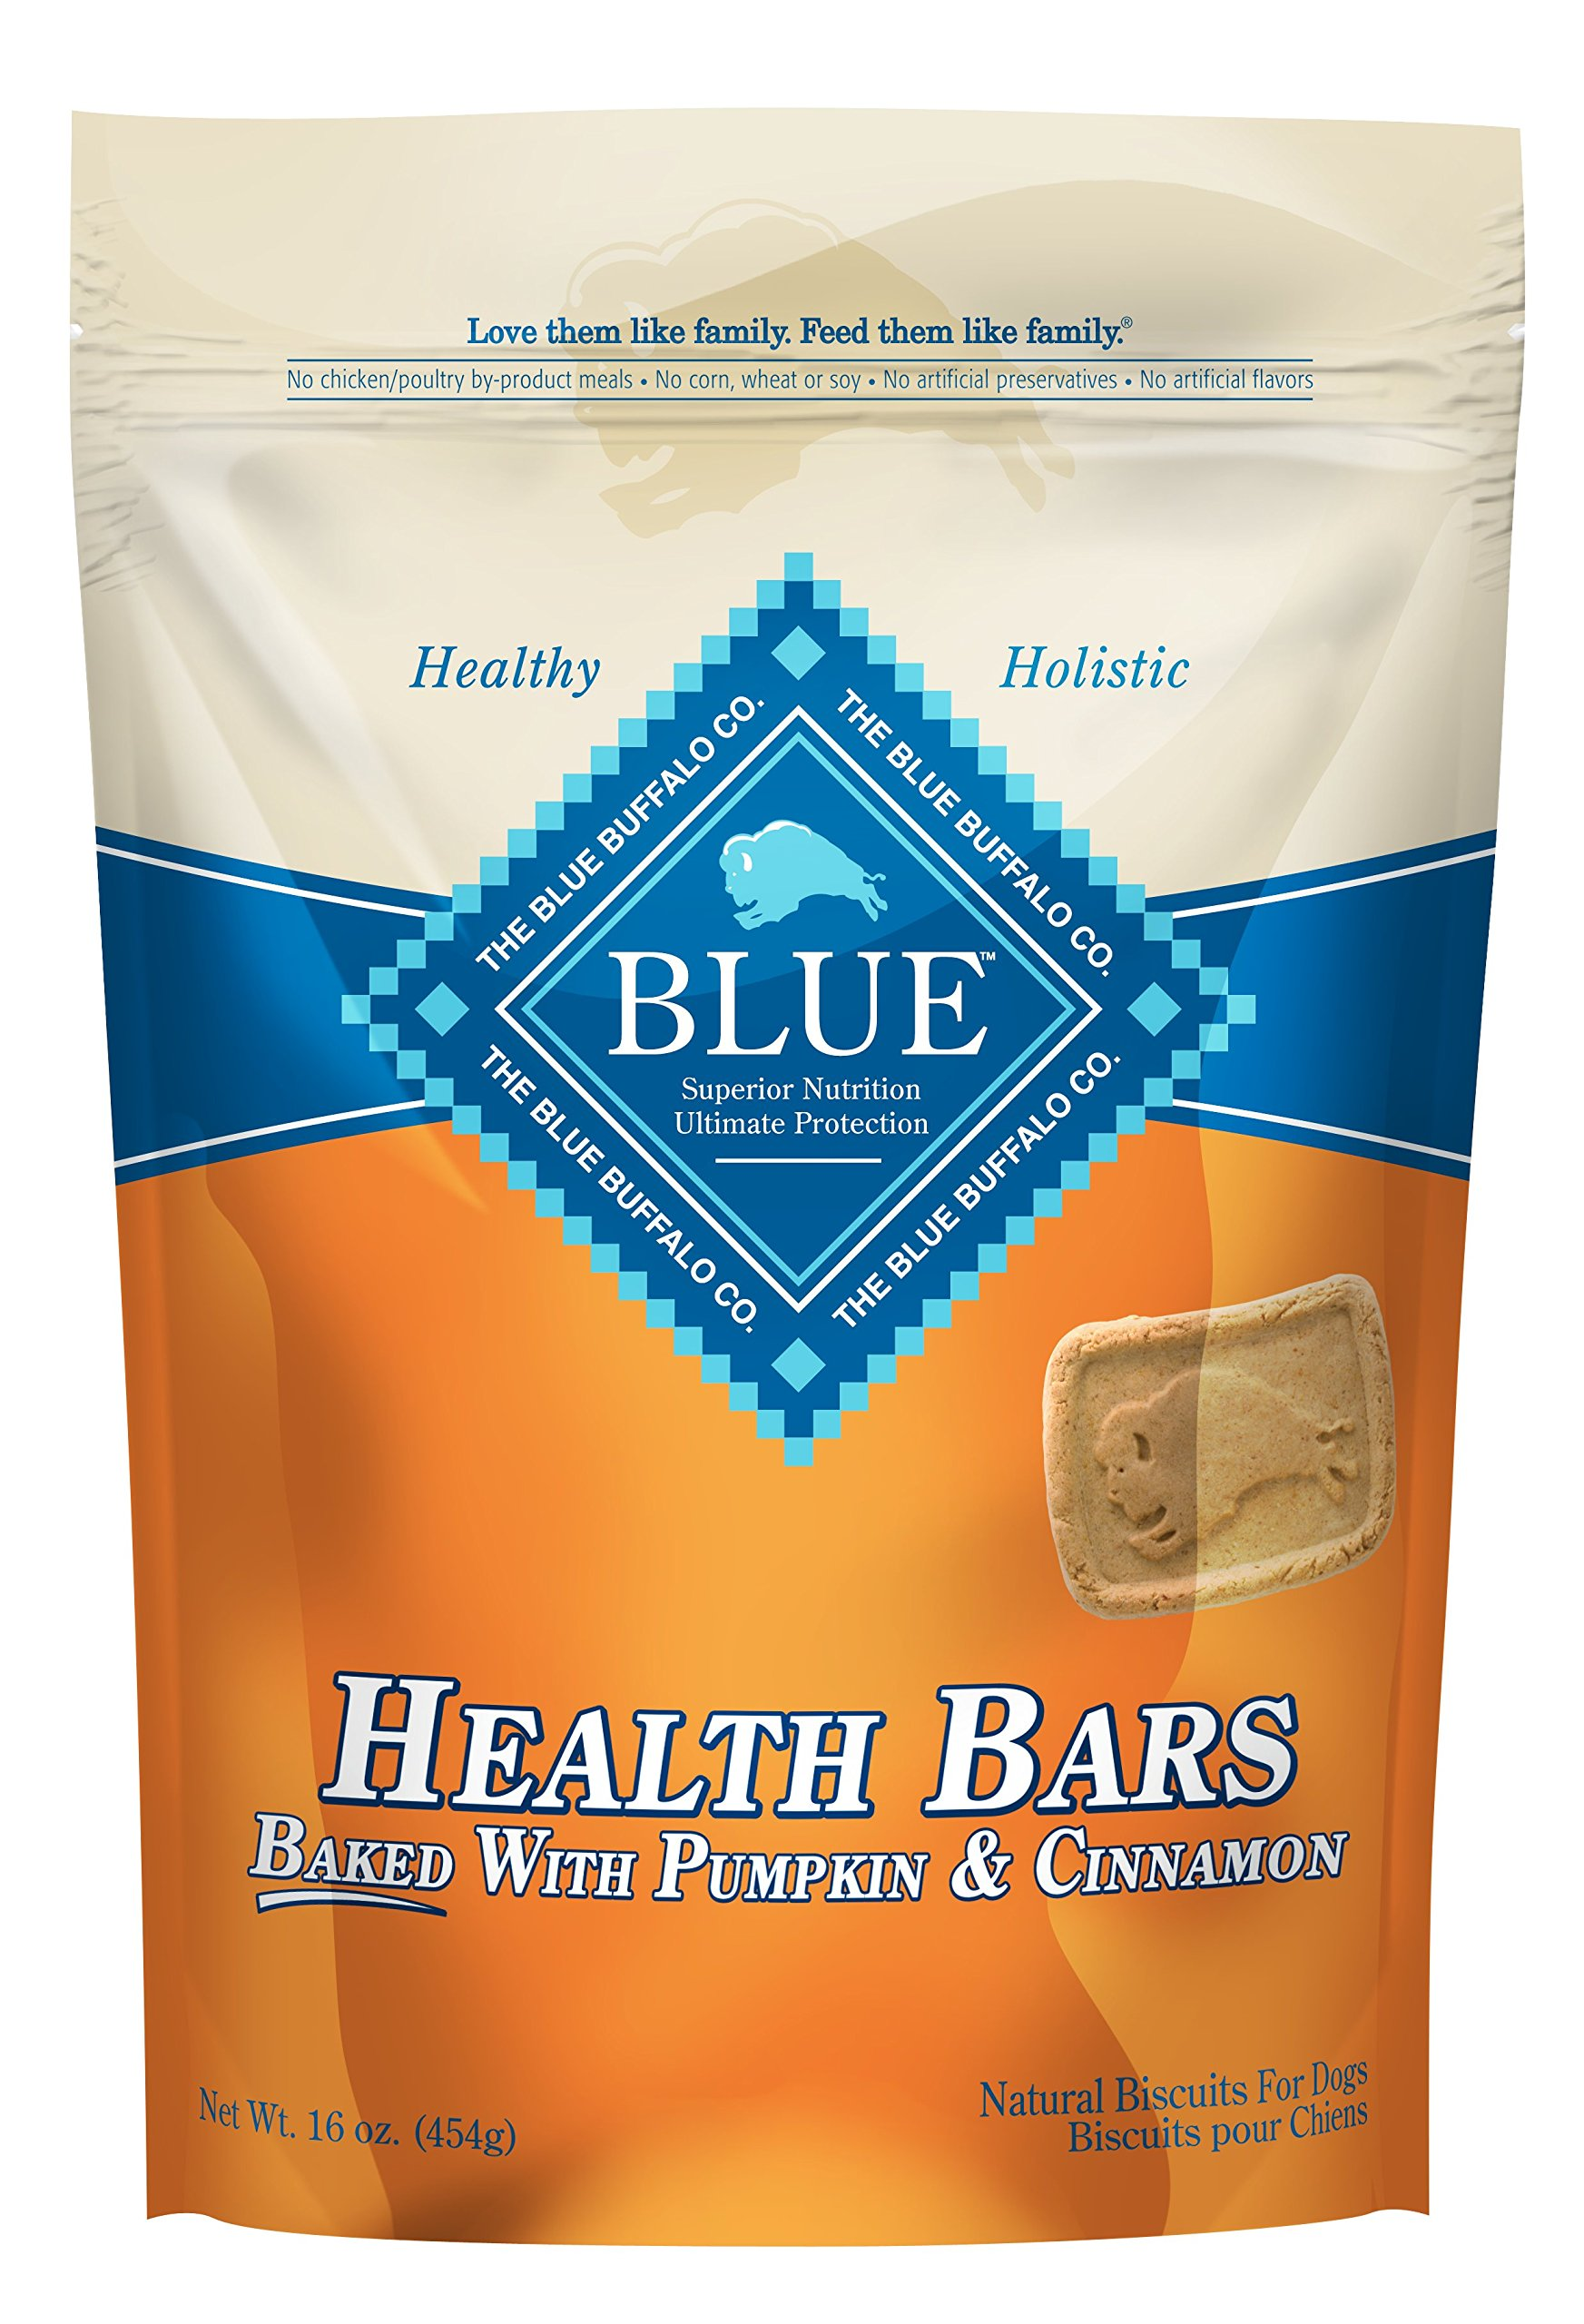 Blue Pumpkin and Cinnamon Health Bars for Dogs, 16 oz (12 Pack)